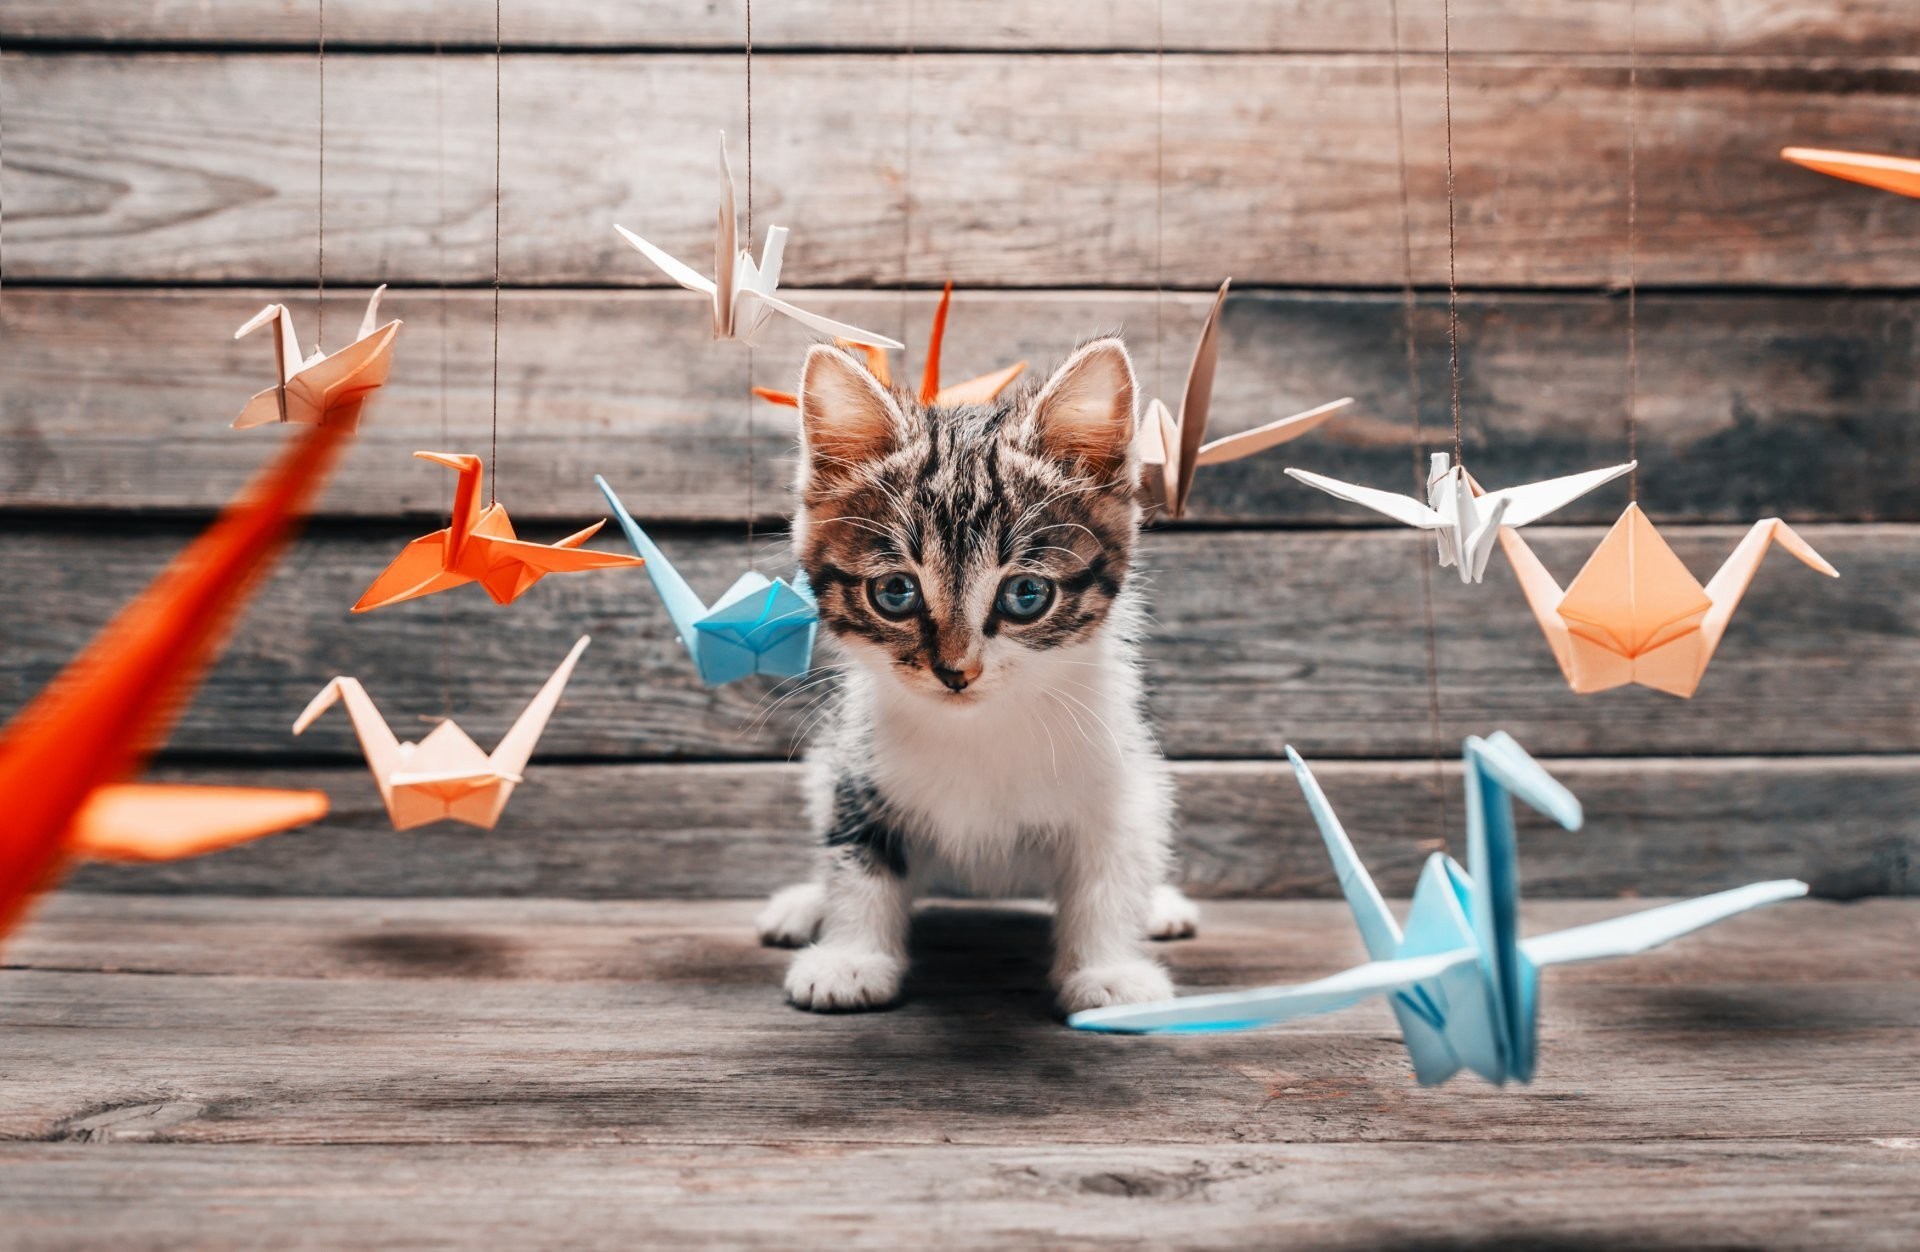 1920x1252 cat kotyara mustache feet tail furry position hunter training game colored  summer beautiful paper origami crane